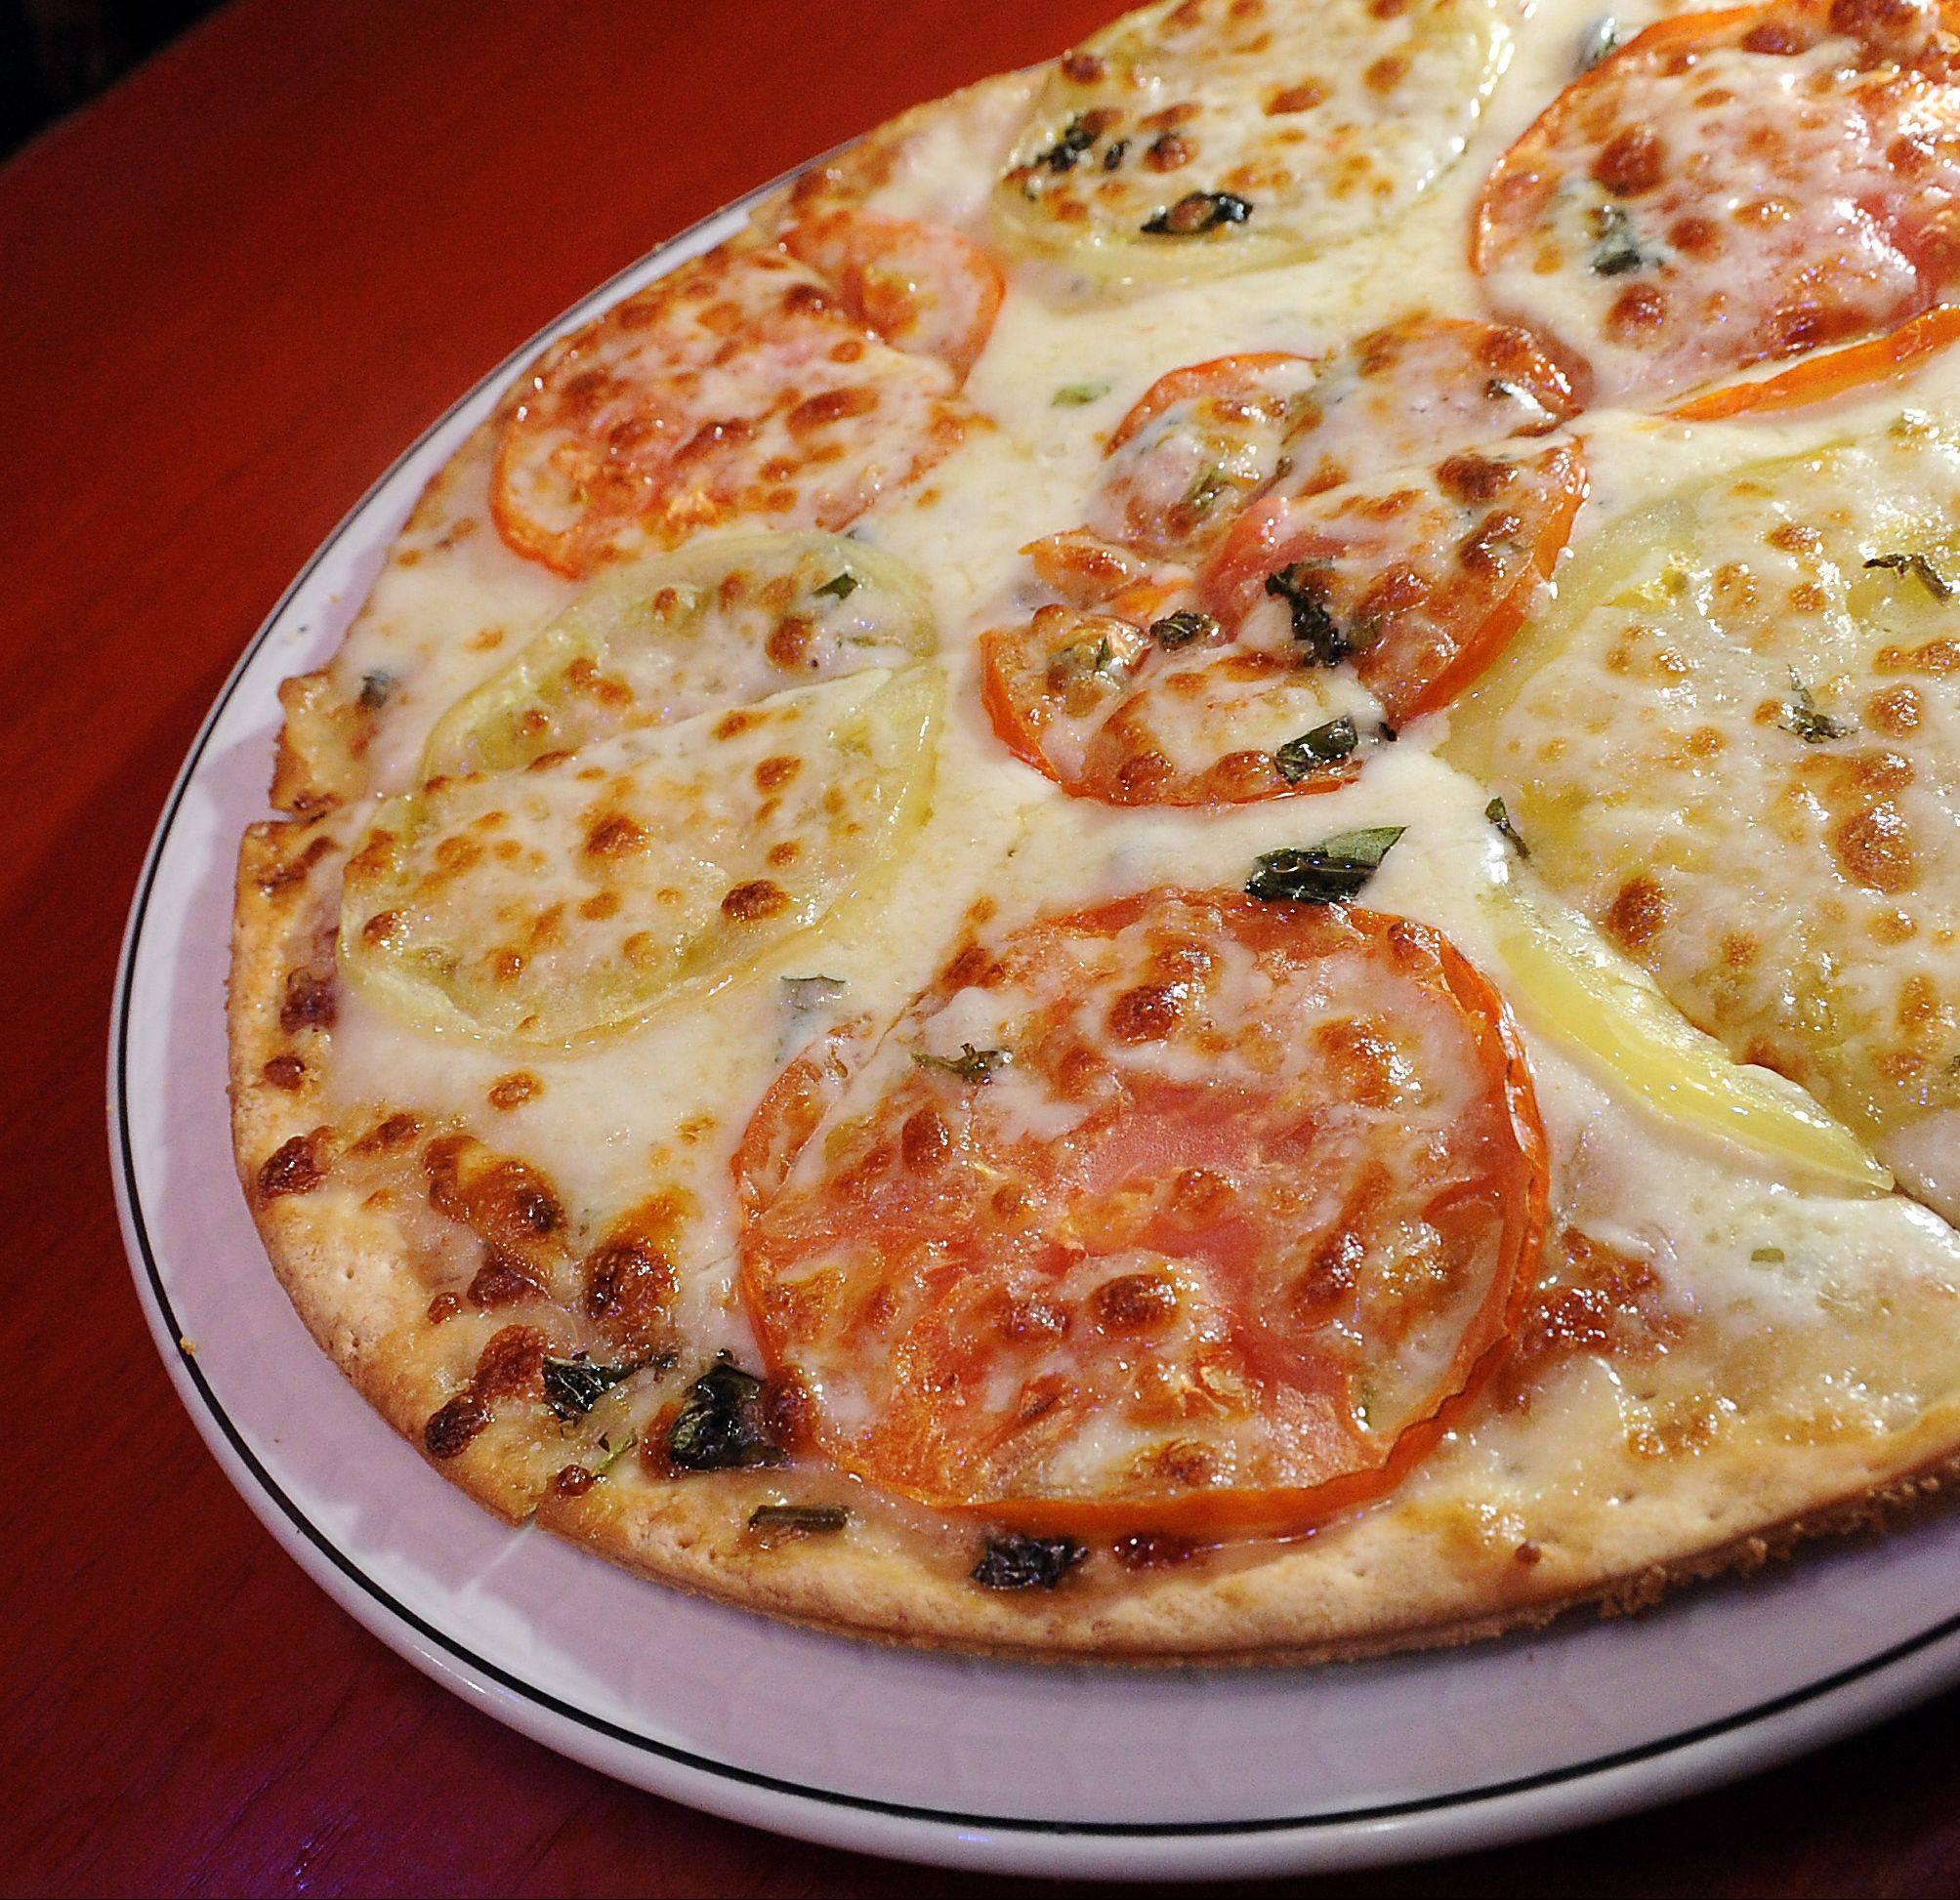 Pizza is just one of the items meant to be shared on Drink's menu.